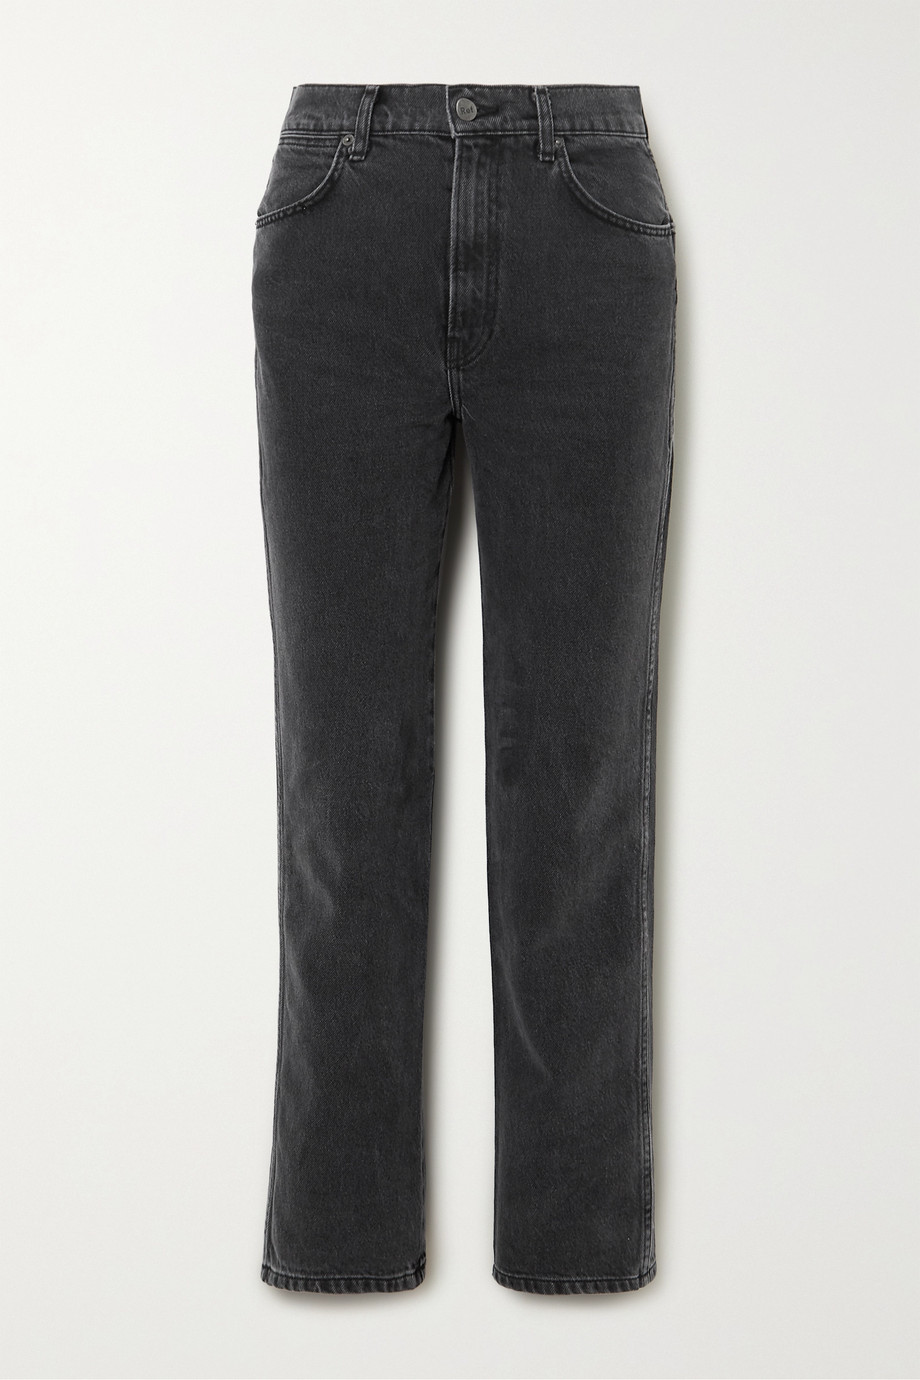 Reformation + NET SUSTAIN Star high-rise straight-leg jeans